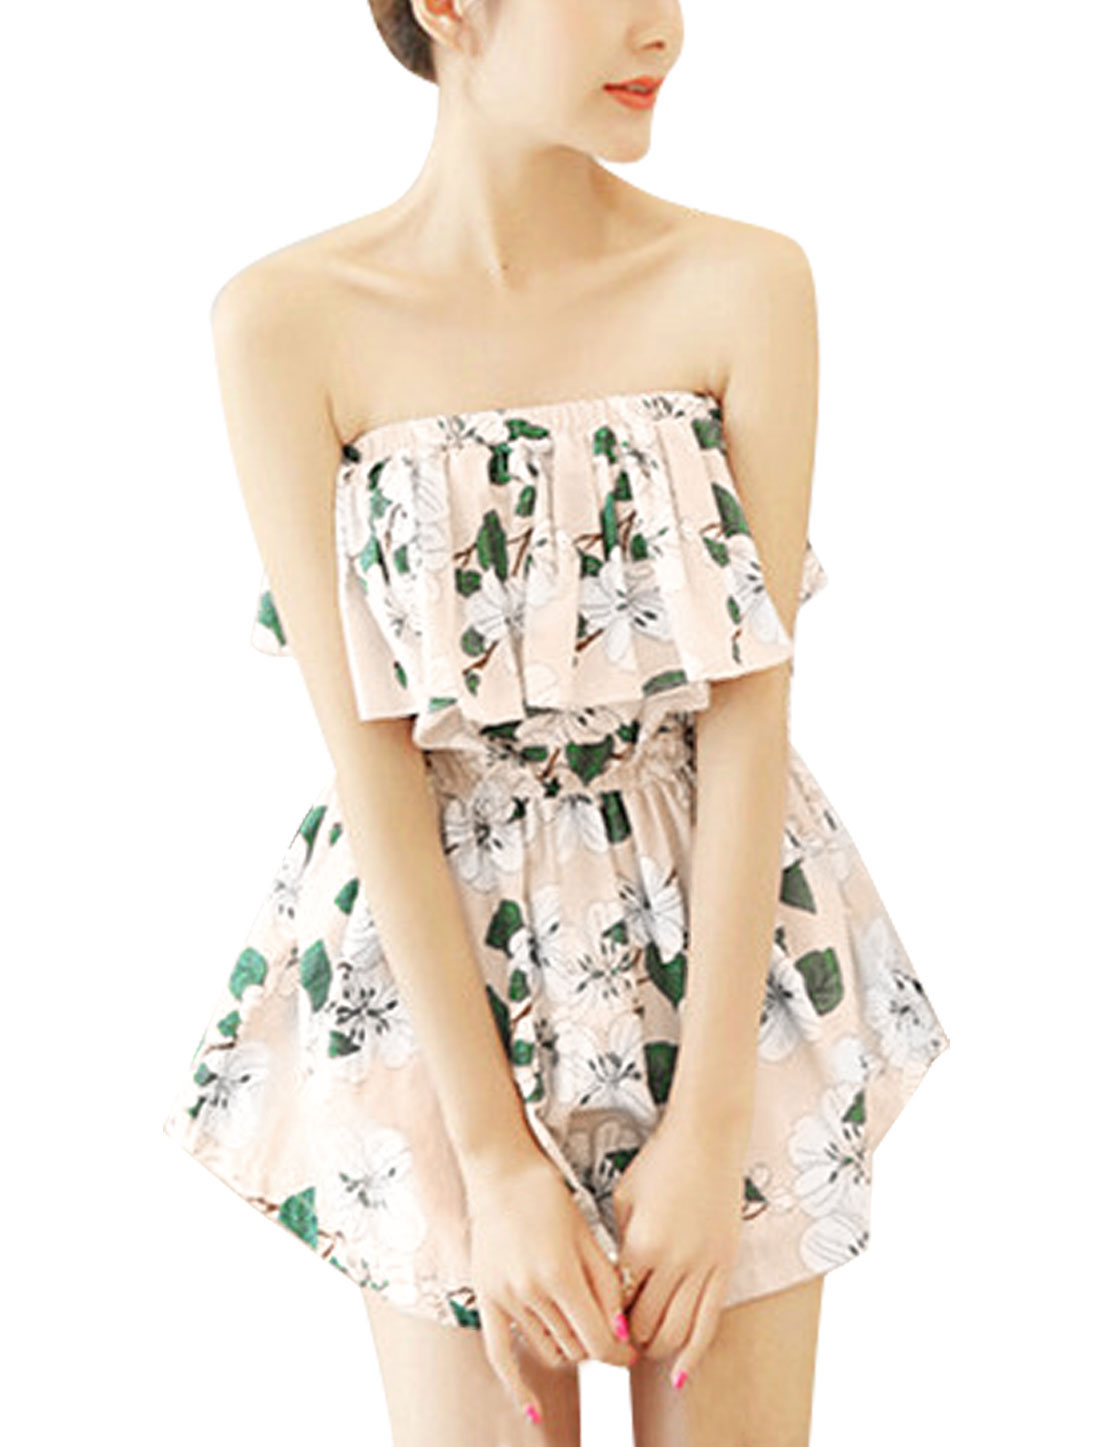 Woman Floral Prints Strapless Flouncing Upper Unlined Chiffon Playsuit Light Pink XS